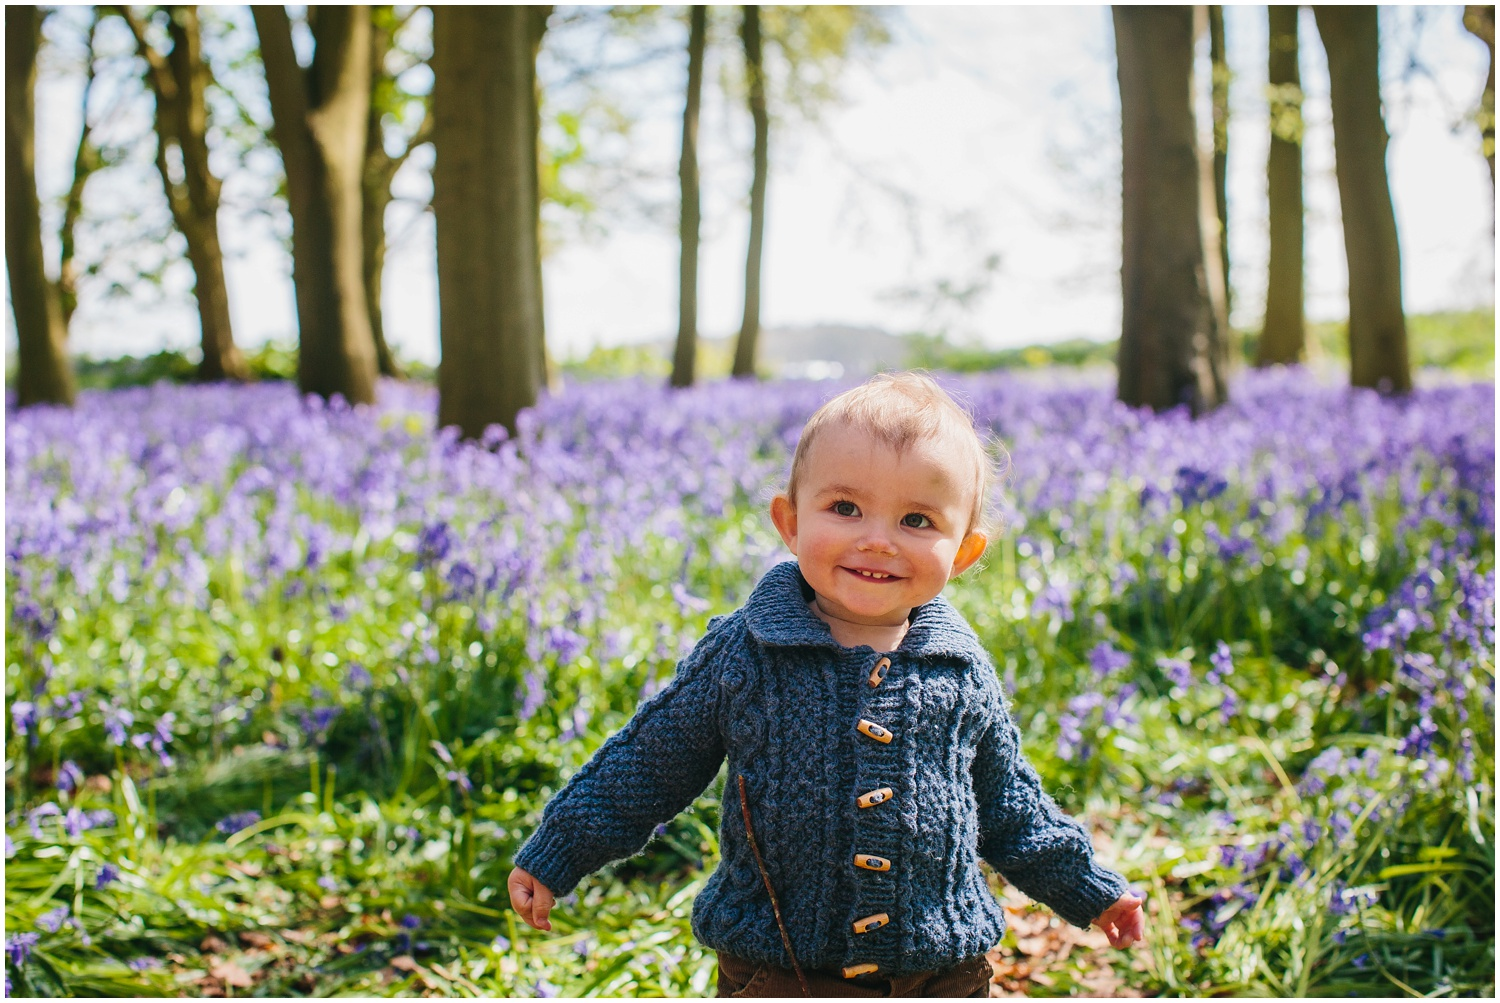 Catherine-Photography-Portraits-Family-Bluebells_0009-(2).jpg